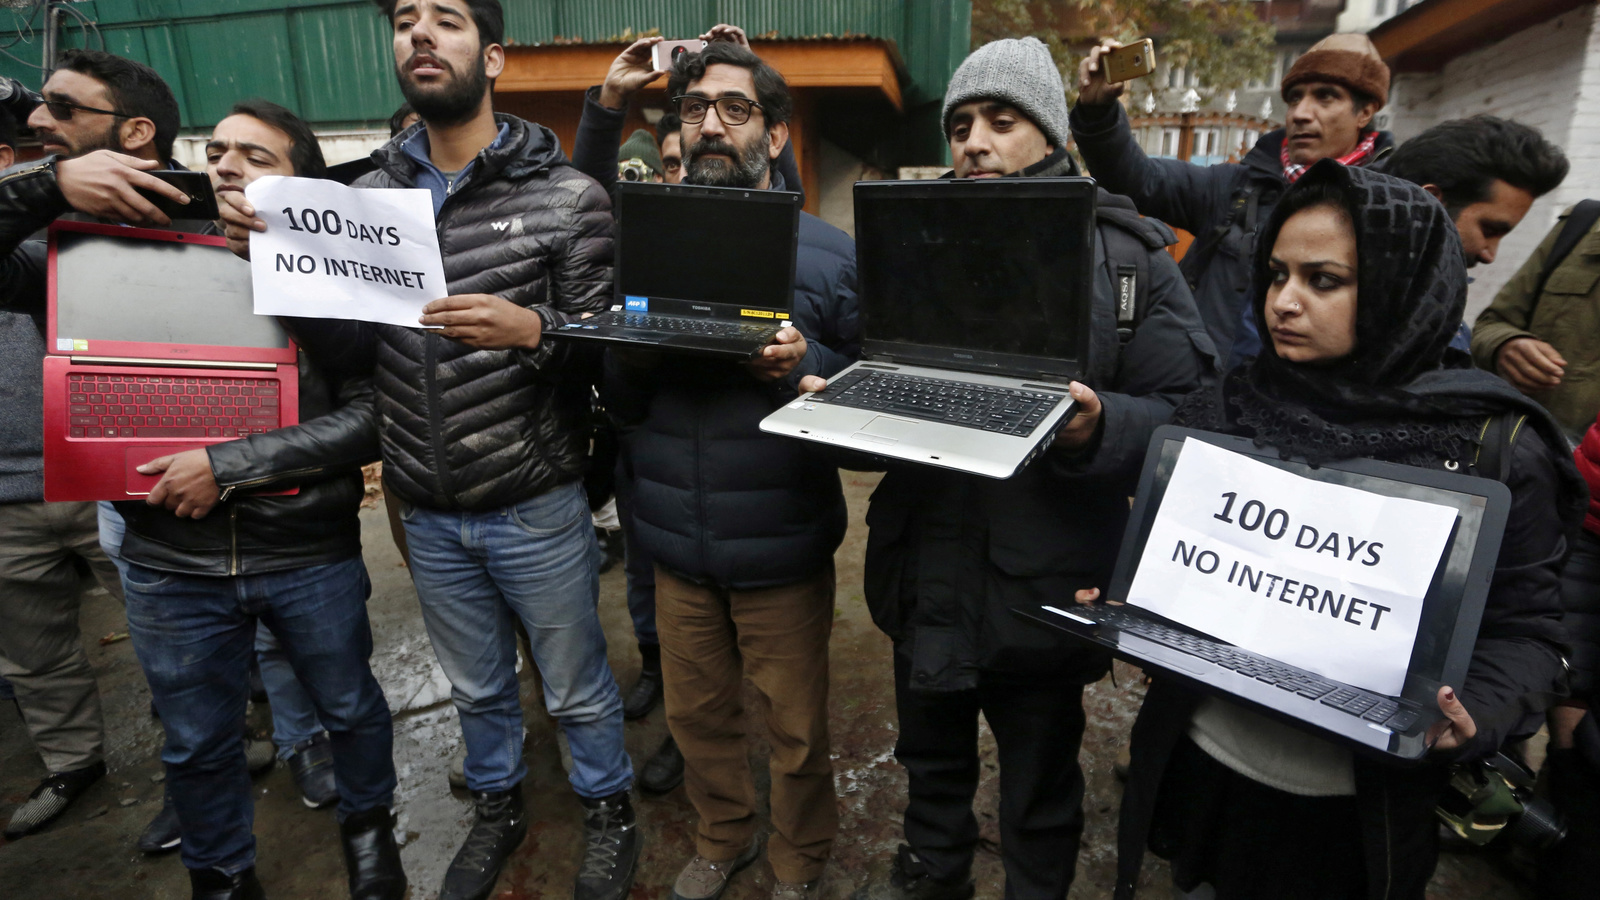 Kashmiri journalists display laptops and placards during a protest demanding restoration of internet service, in Srinagar, November 12, 2019. REUTERS/Danish Ismail - RC2O9D9L2D29